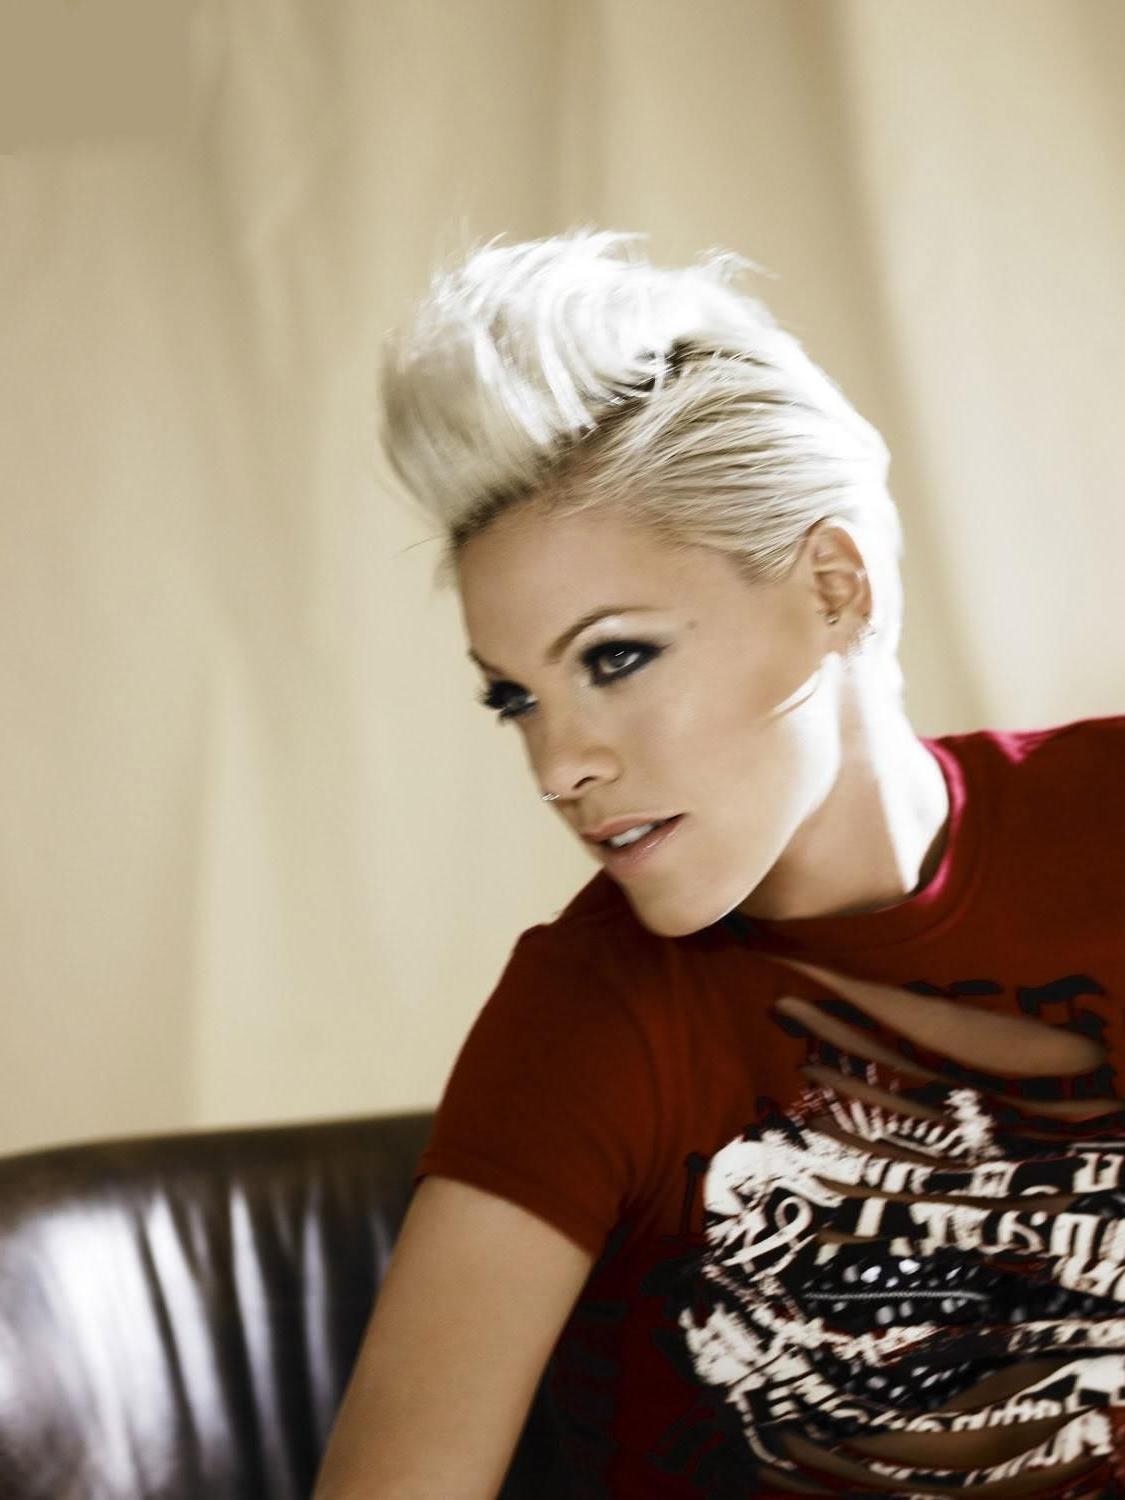 Famous Bleached Feminine Mohawk Hairstyles Intended For P!nk Hair Mohawk P Nk Hair Mohawk P Nk Hair (View 8 of 20)